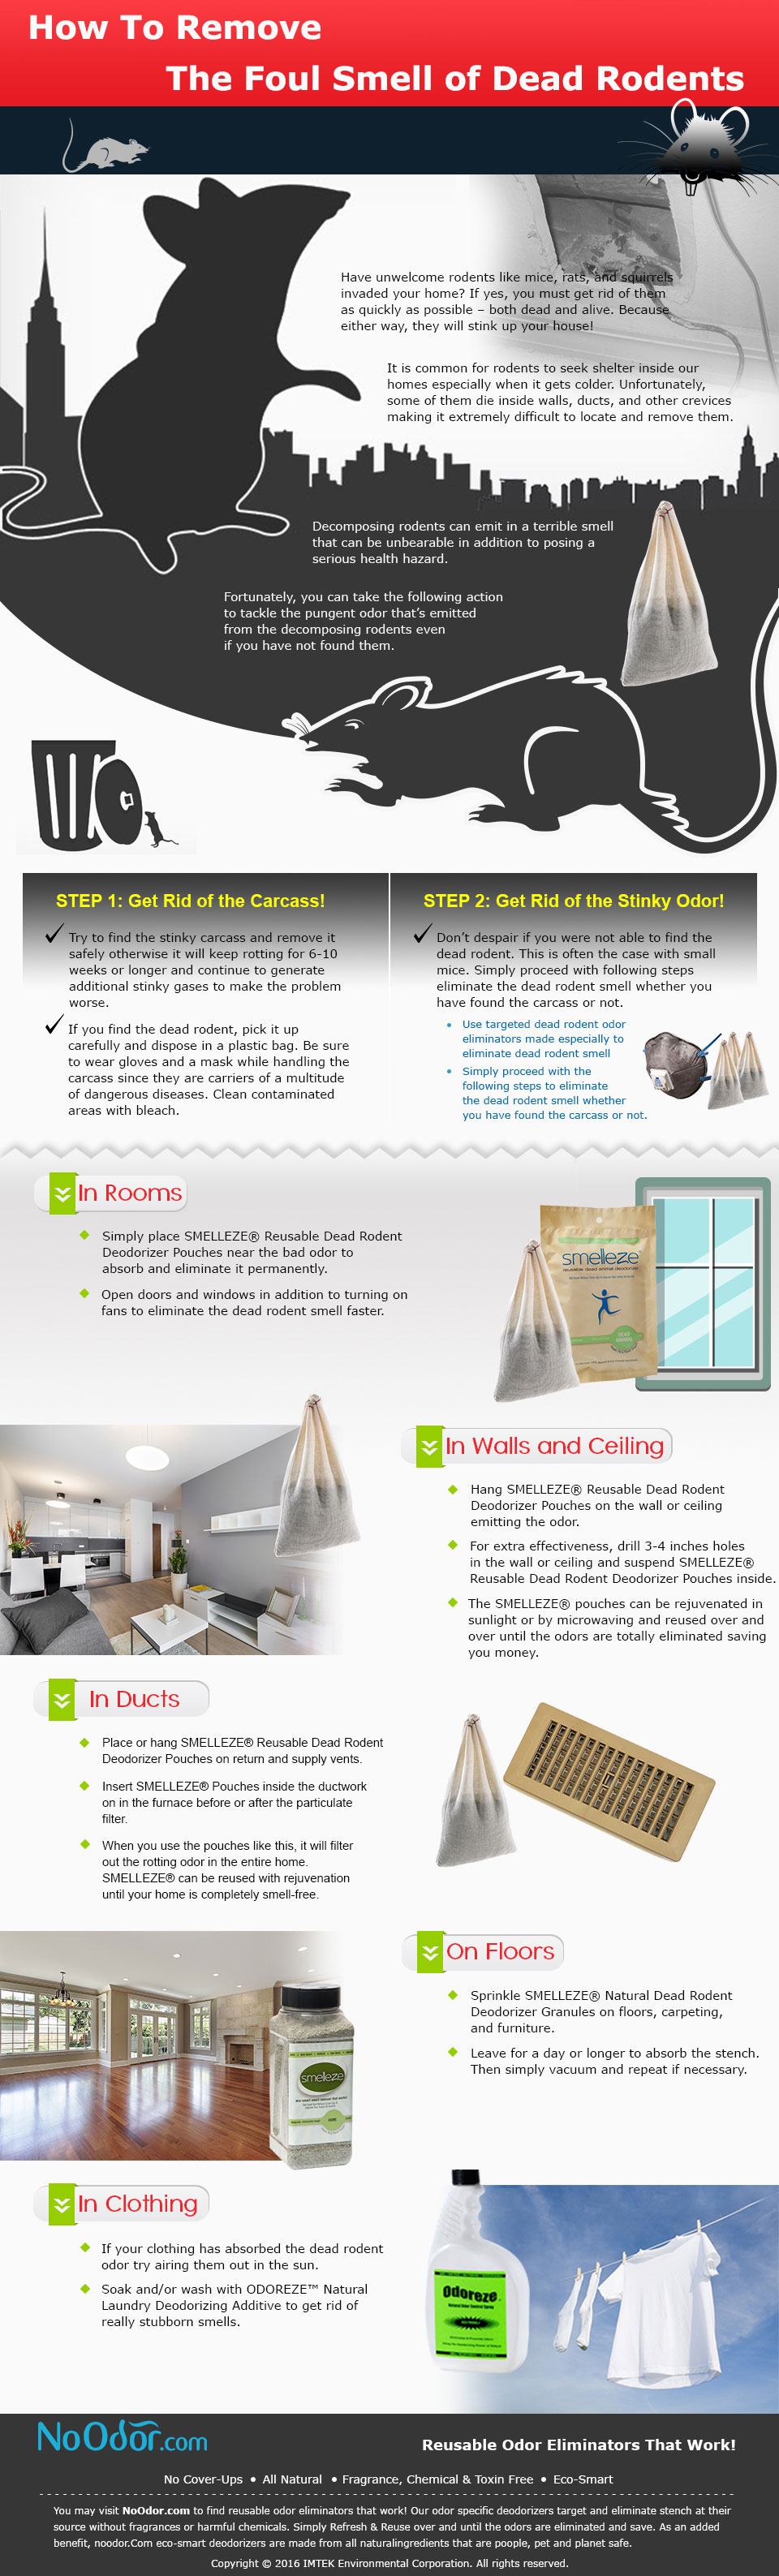 How-to-Remove-the-Foul-Smell-of-Dead-Rodents